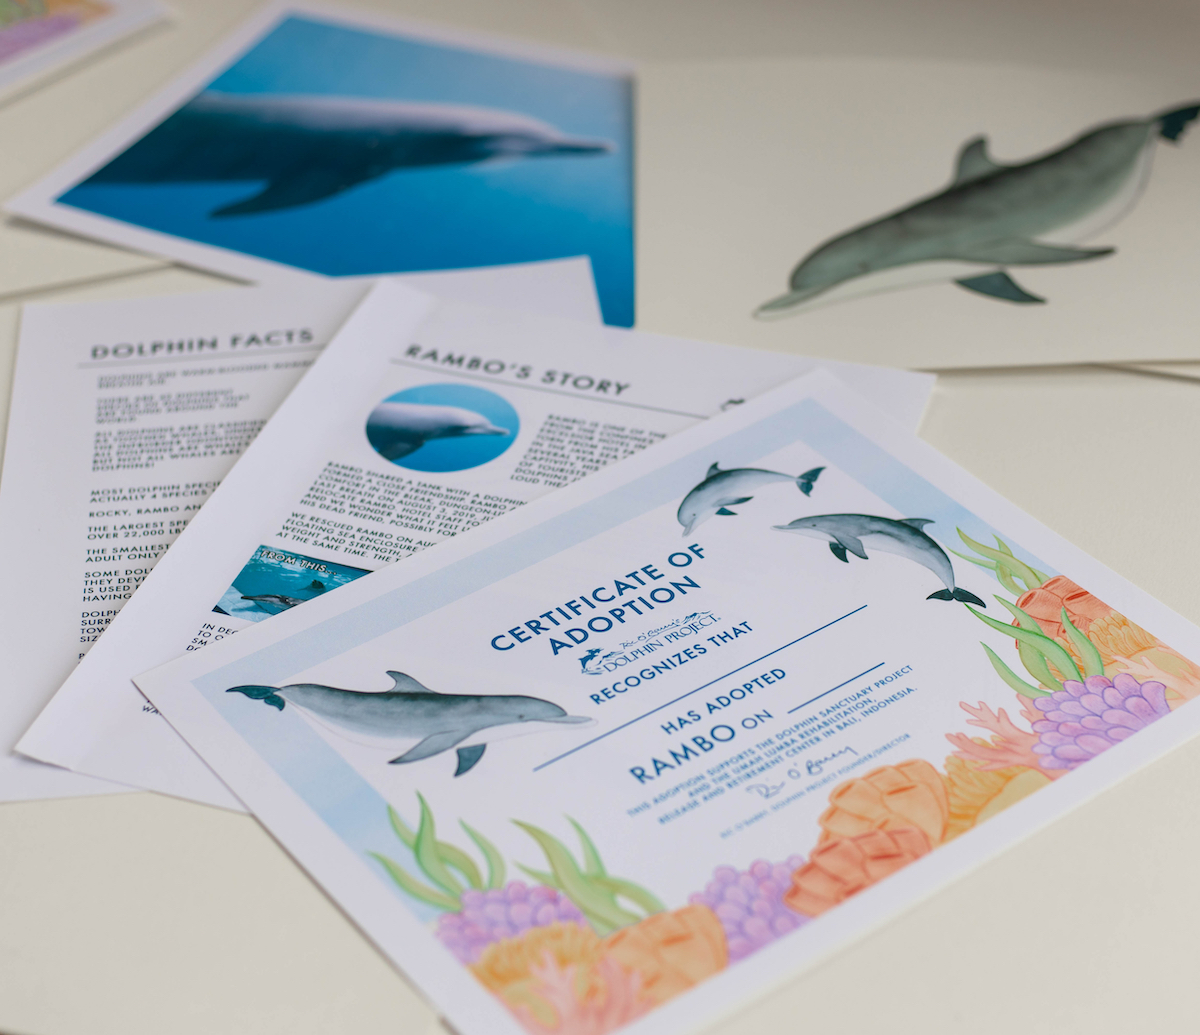 Rambo adopt a dolphin package